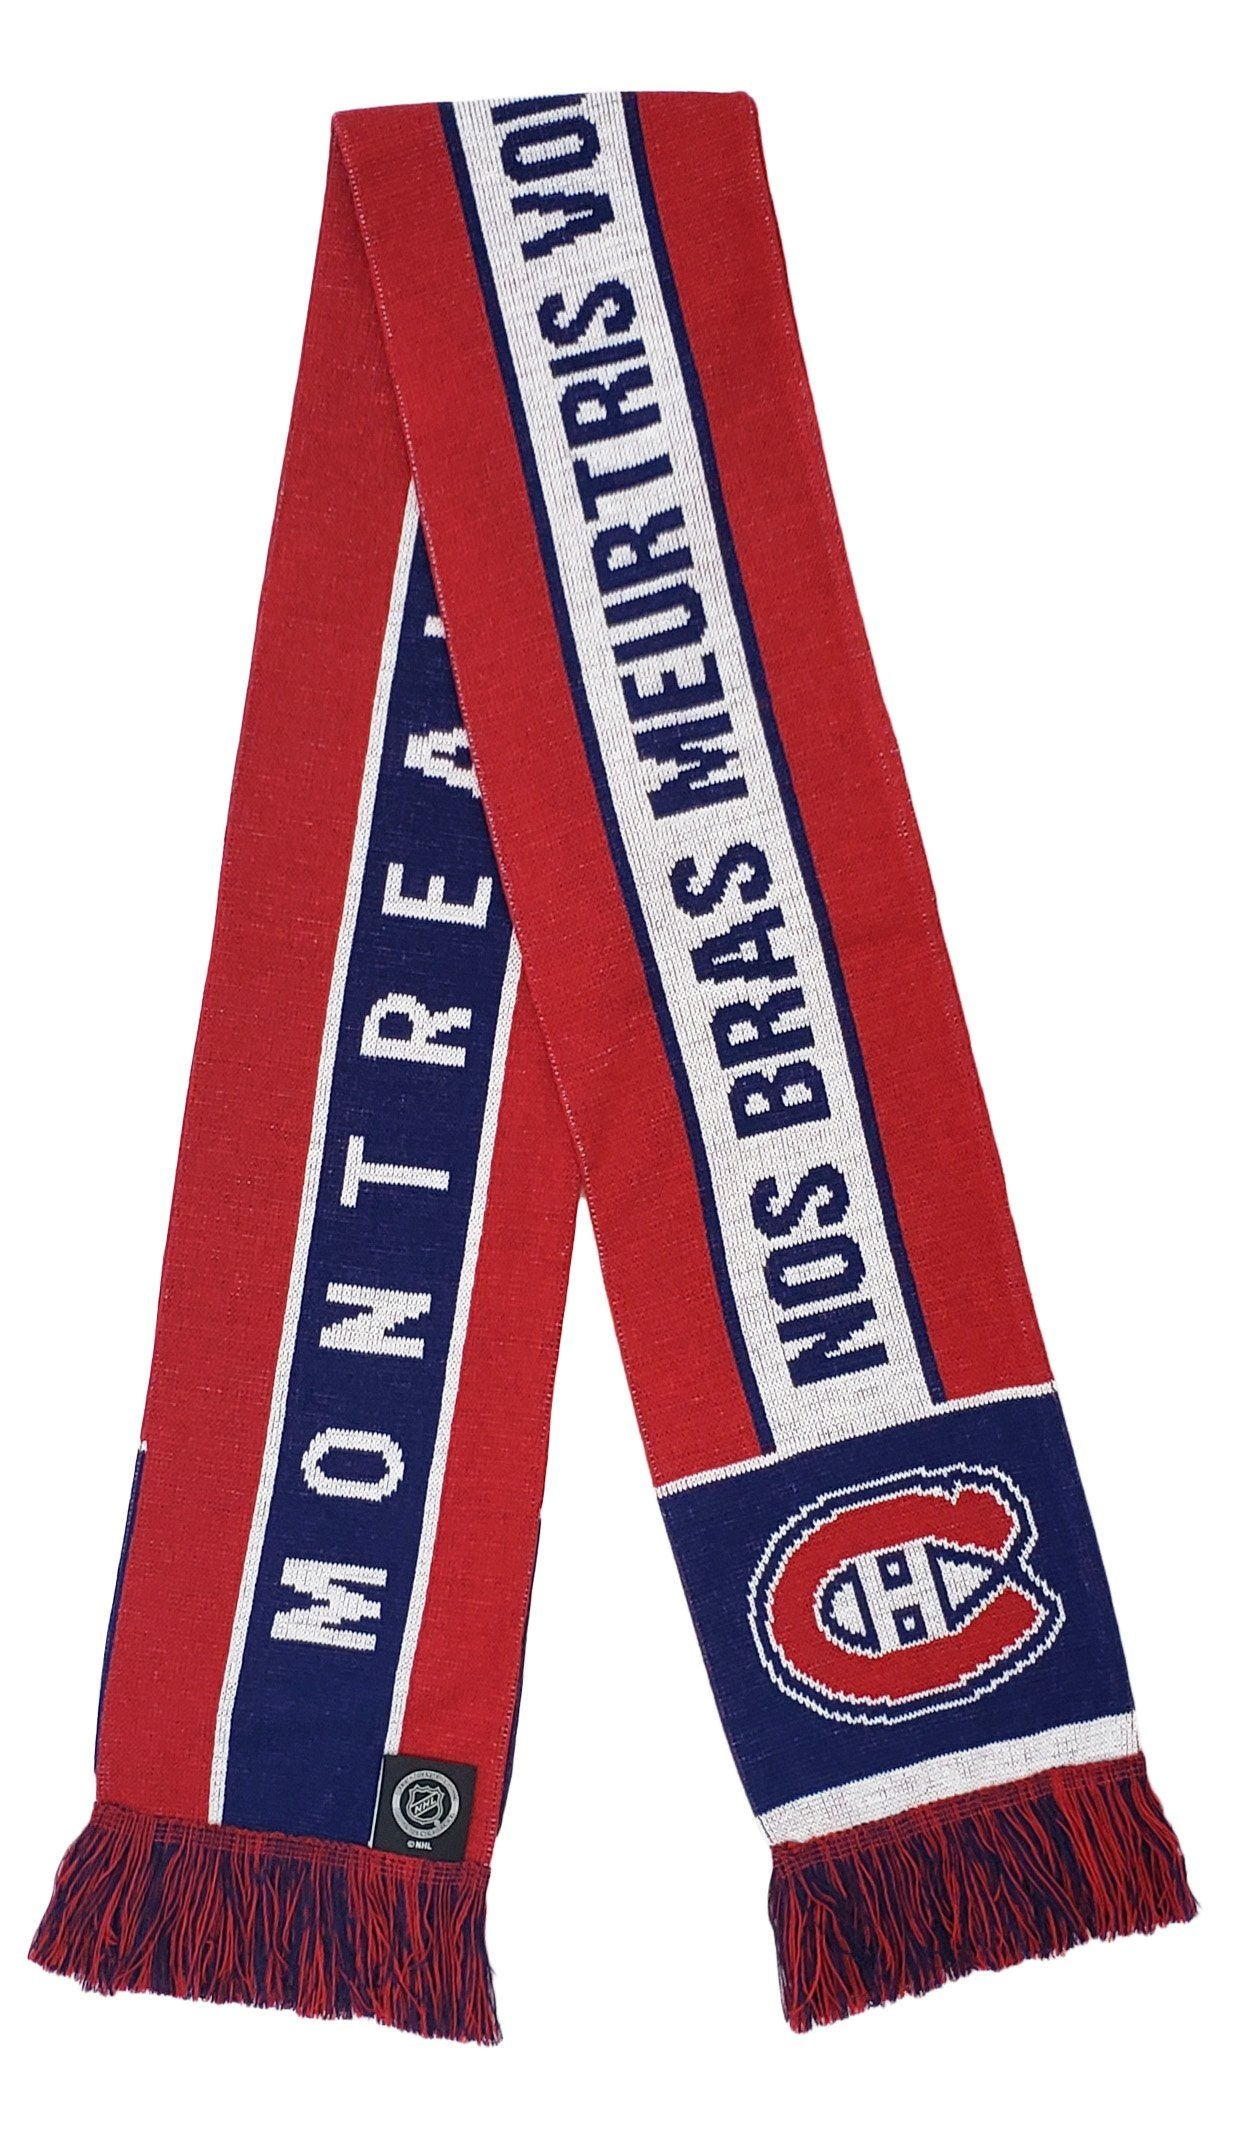 MONTREAL CANADIENS SCARF - Home Jersey